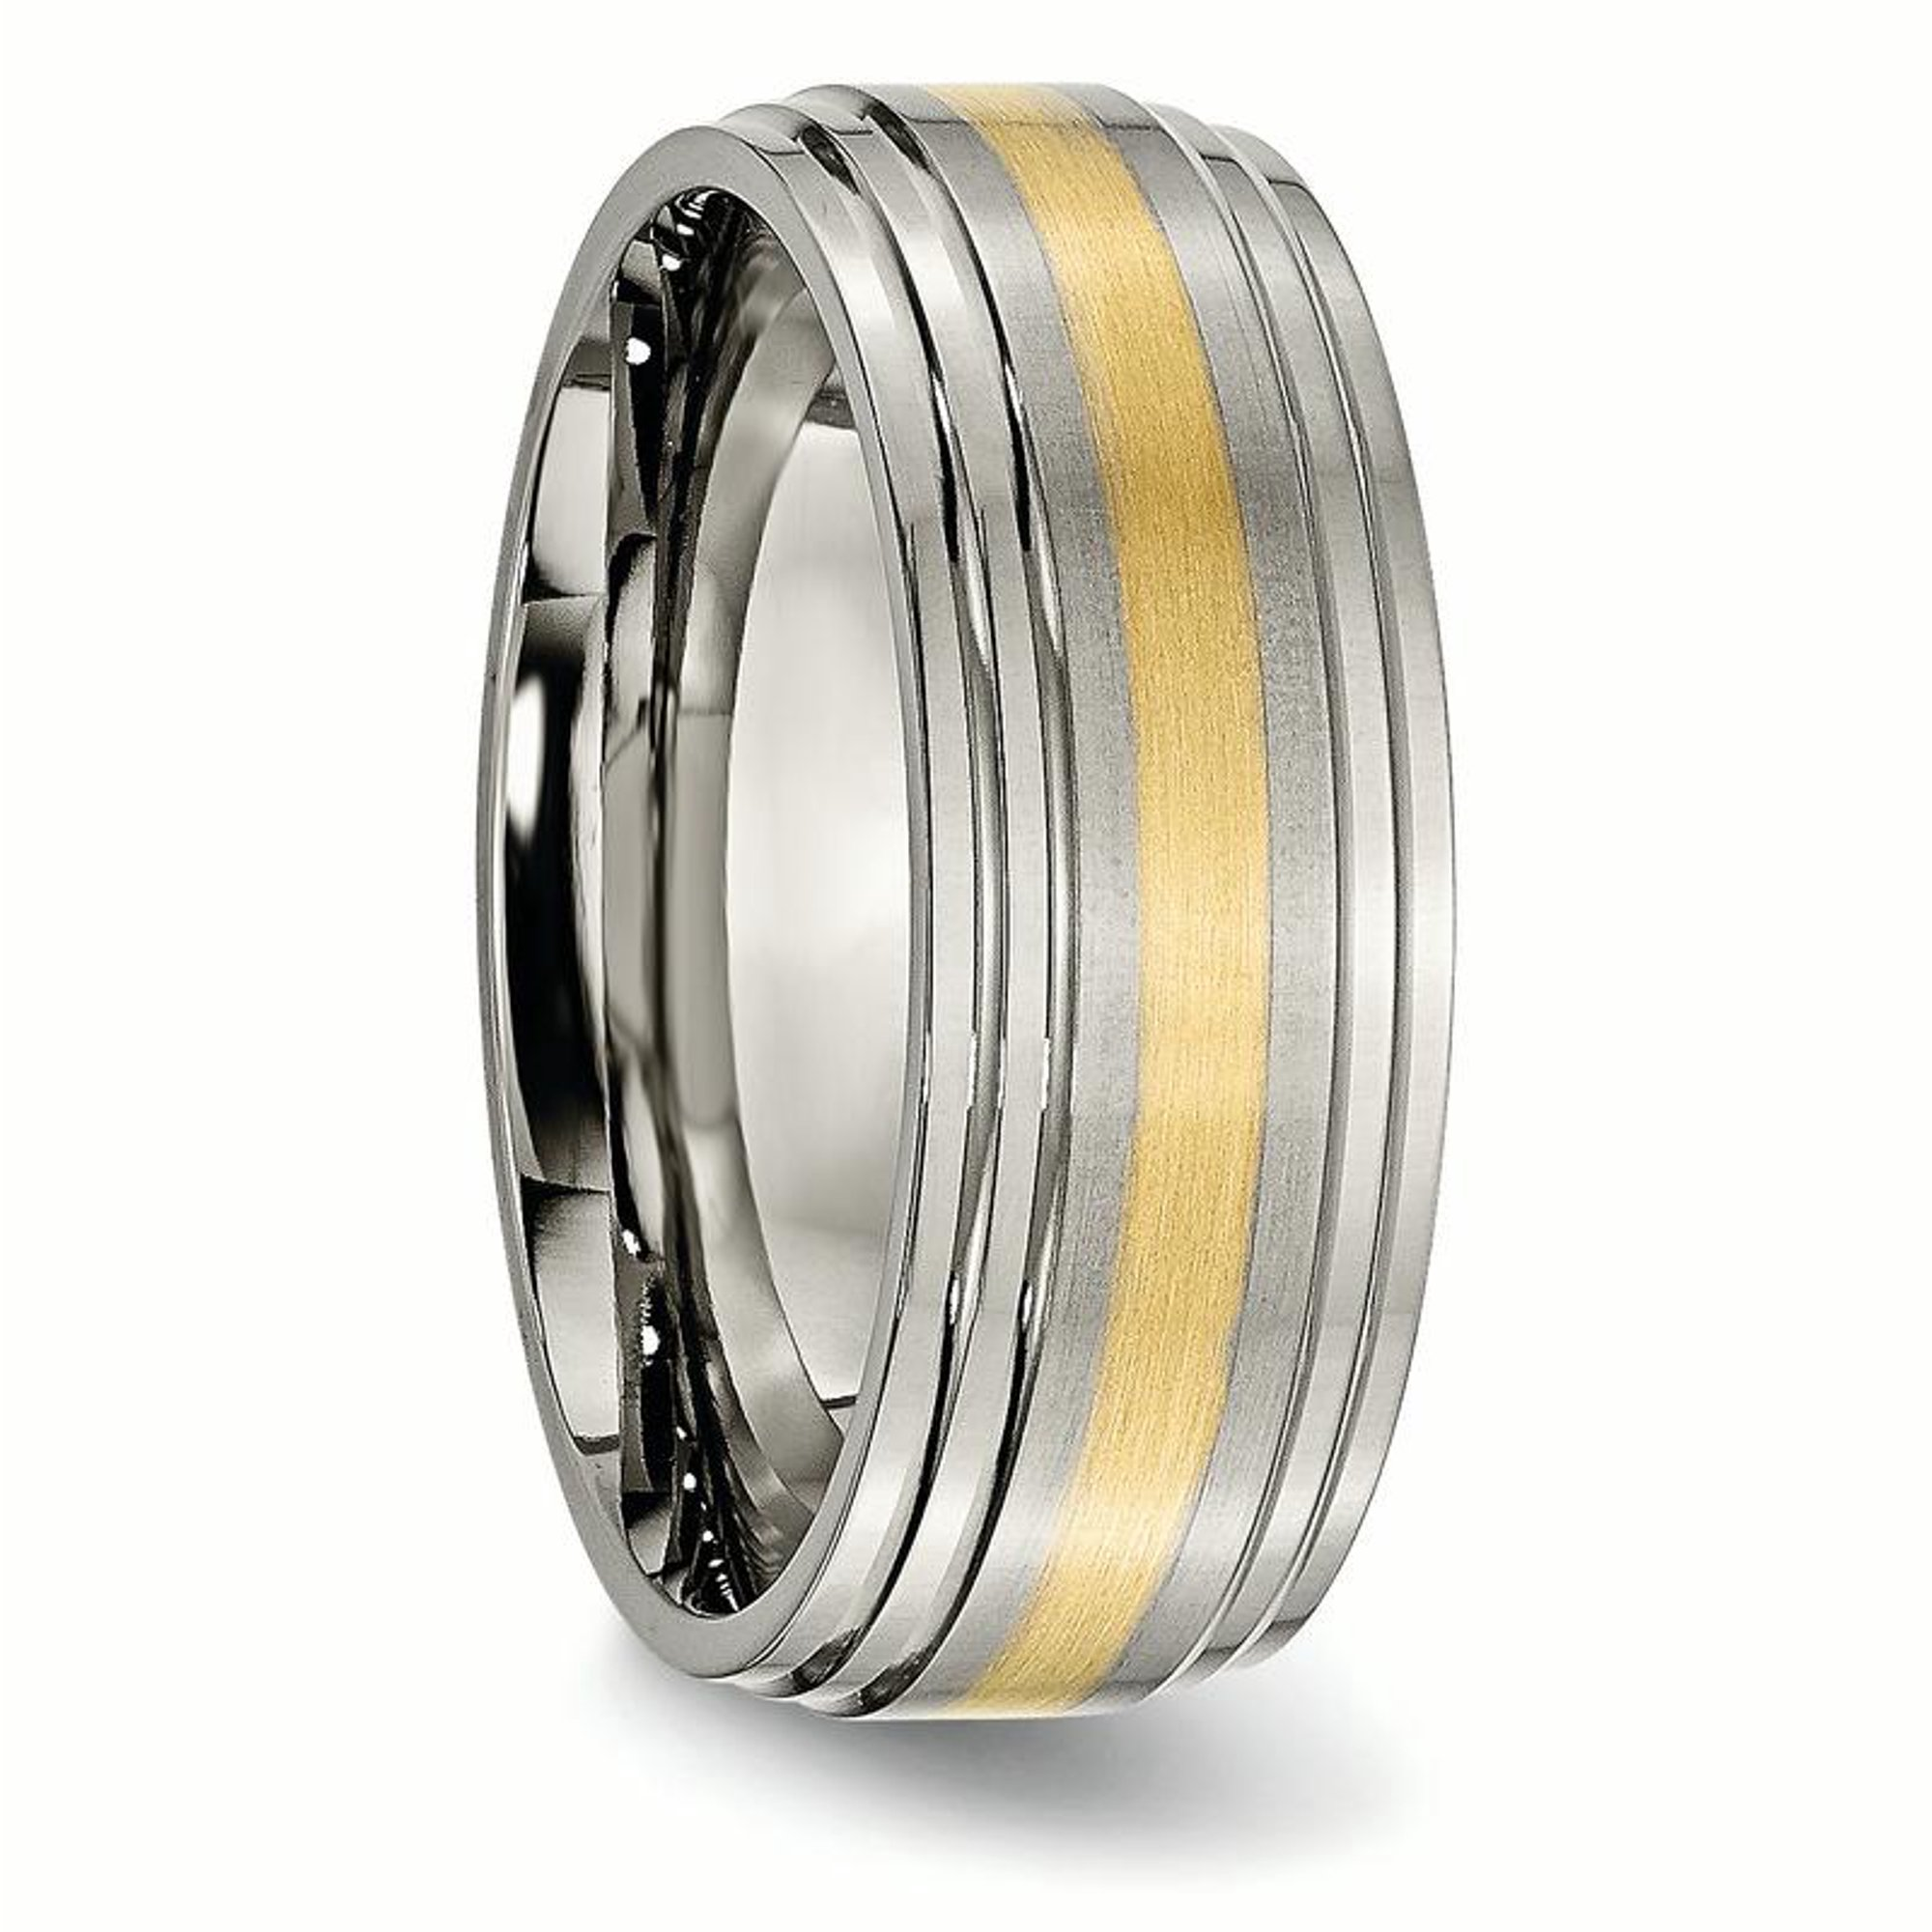 Fashion Style Titanium Ridged Edge 14k Yellow Inlay 8mm Brushed/ Wedding Ring Band Size 12.50 Engagement & Wedding Jewelry & Watches